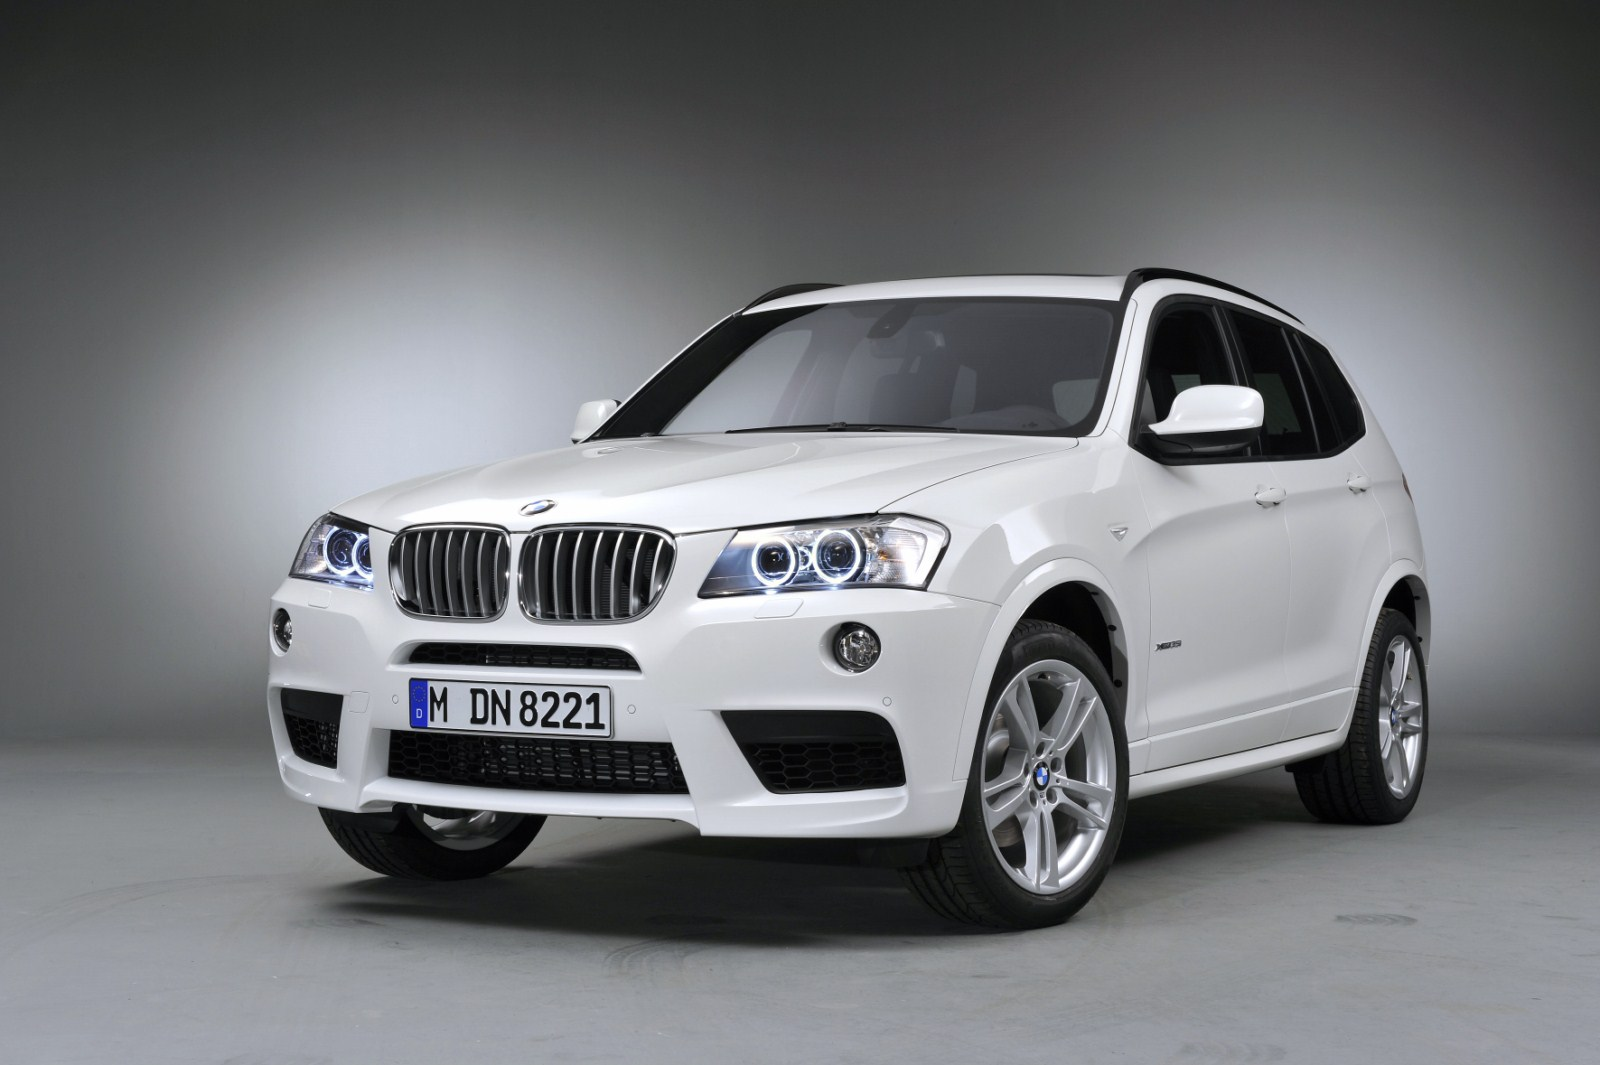 Bmw X3 Xdrive30d To Debut In Europe Next Year 39 2 Mpg